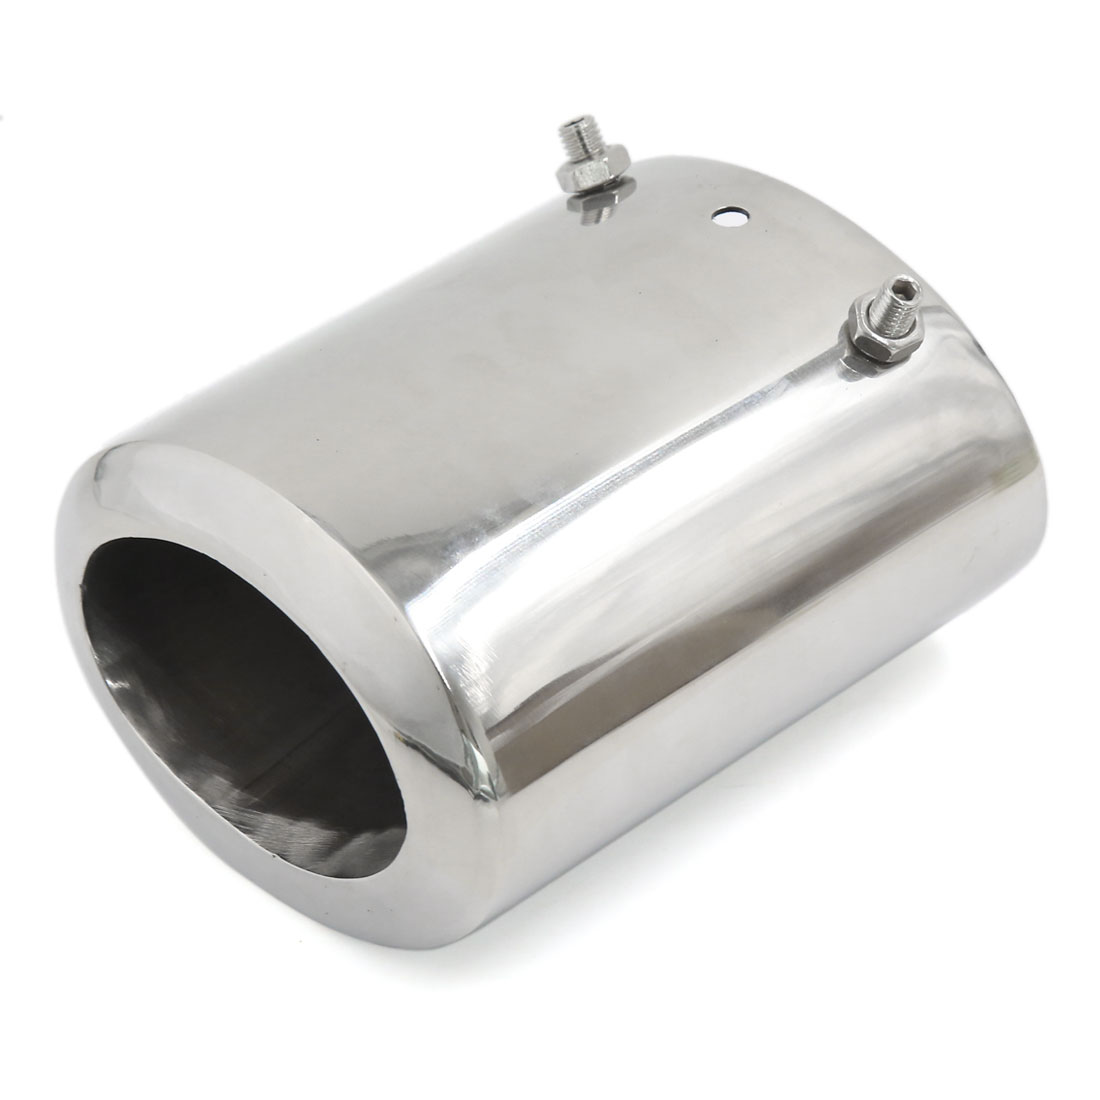 Stainless Steel Oval Slanted Exhaust Muffler Tip 7cm Inlet Dia Silver Tone for Regal